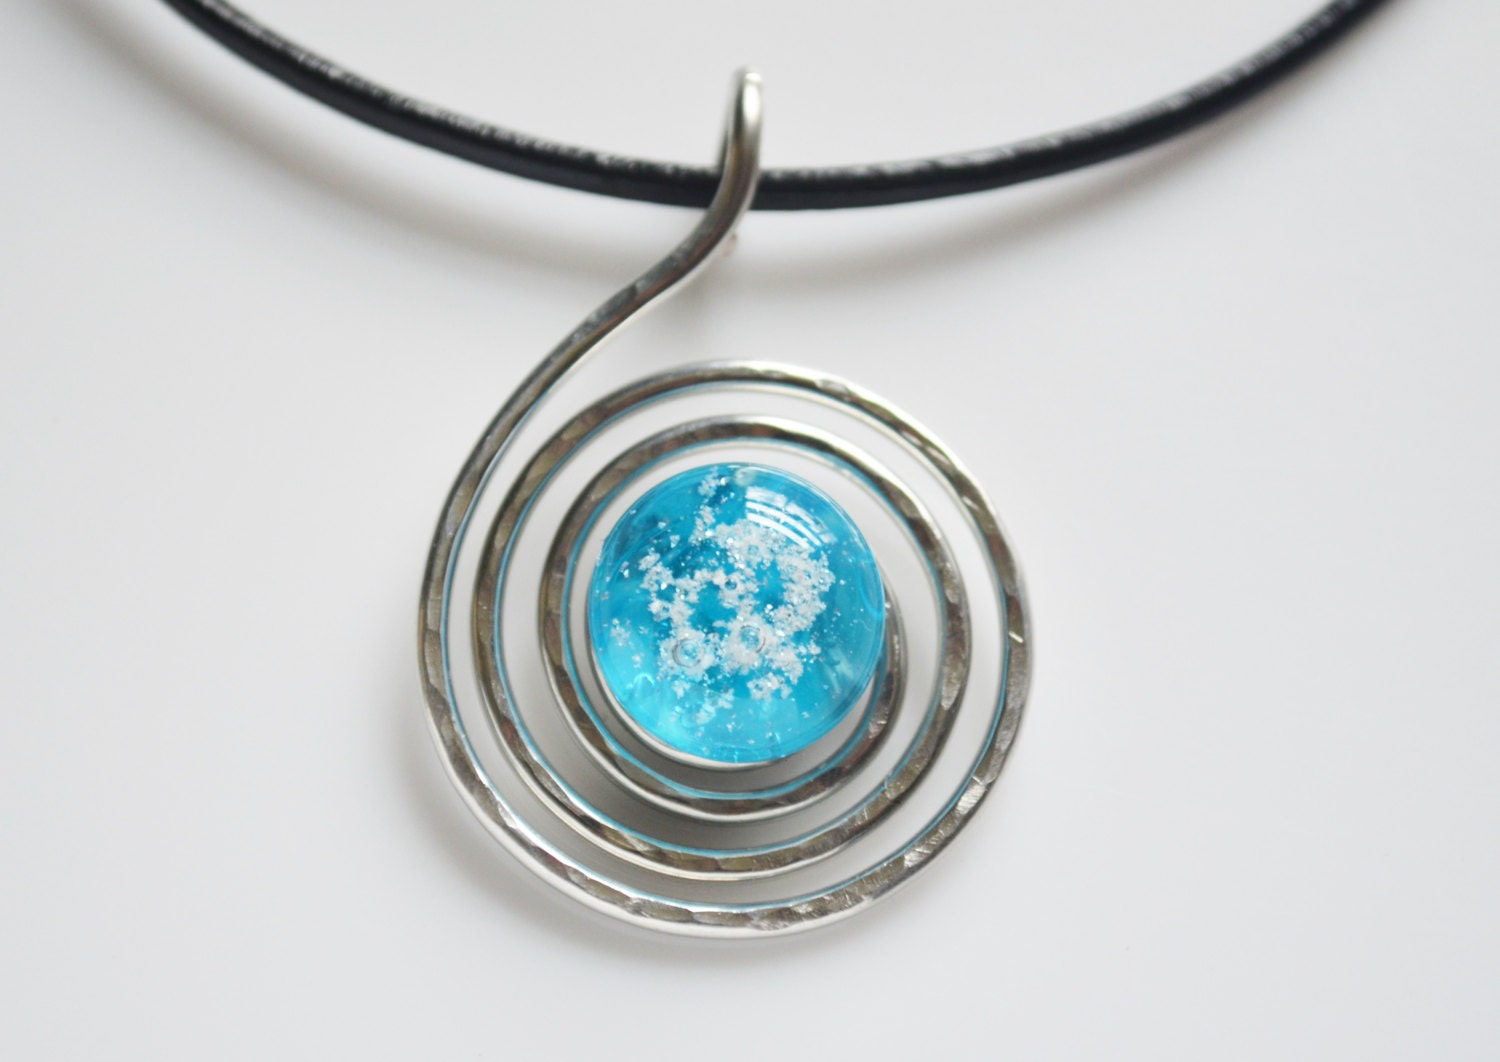 Pet cremation jewelry ash necklace fused glass and hammered for Cremation jewelry for pets ashes